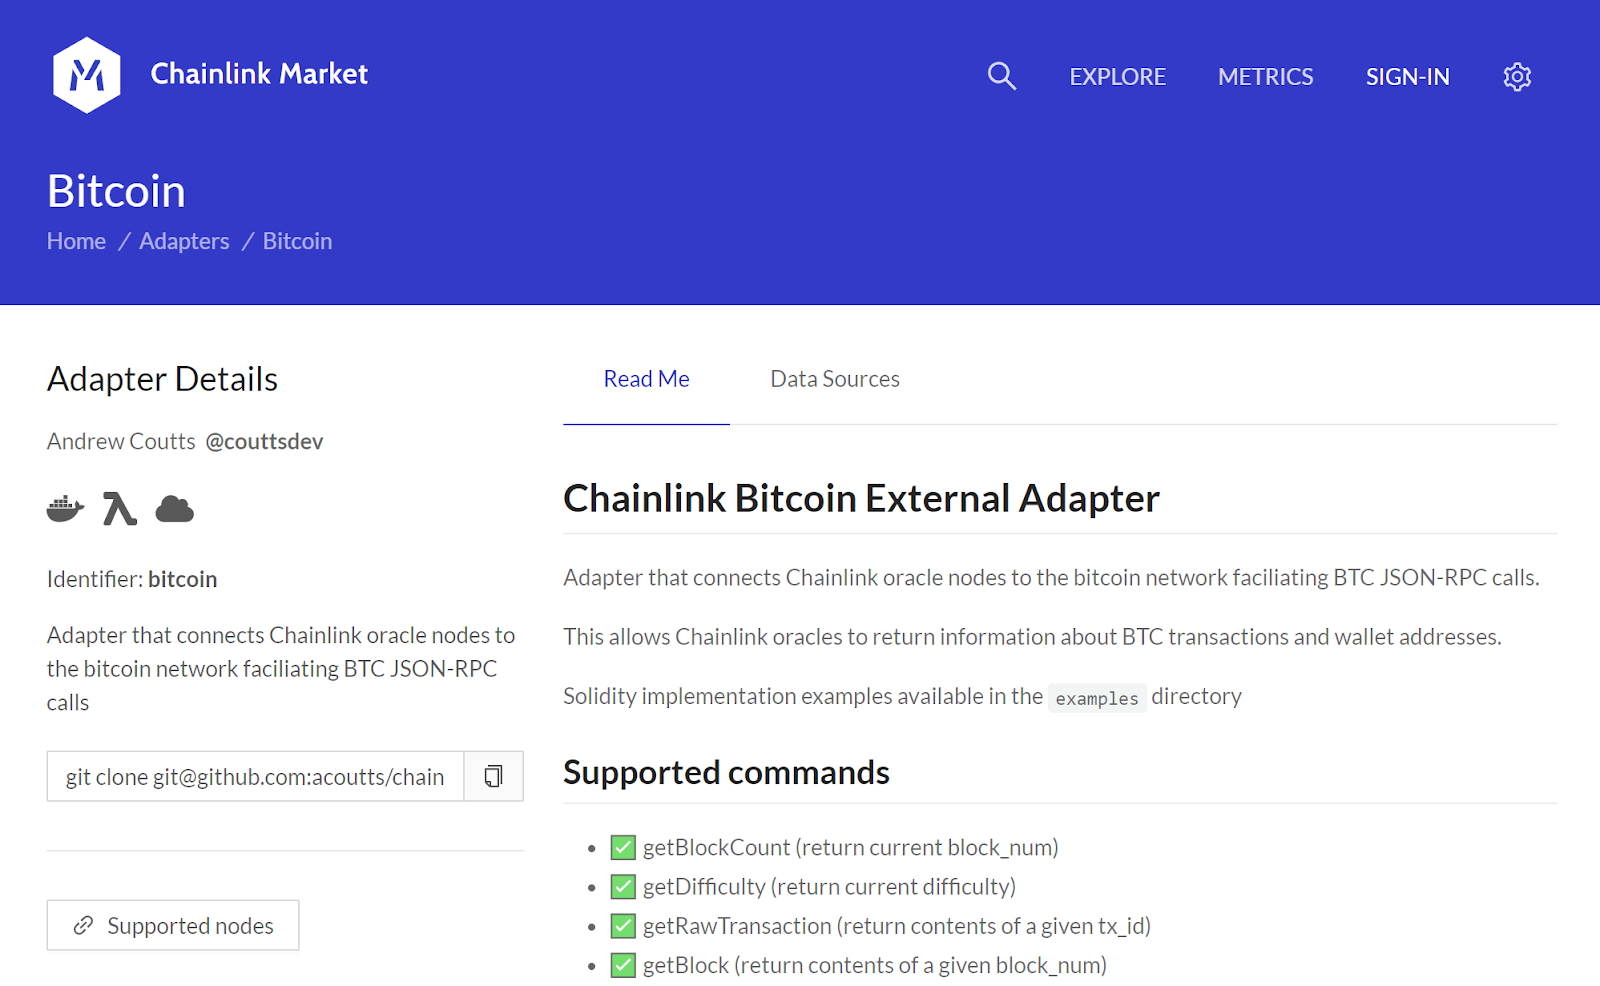 The Chainlink Bitcoin External Adapter on the Chainlink Marketplace